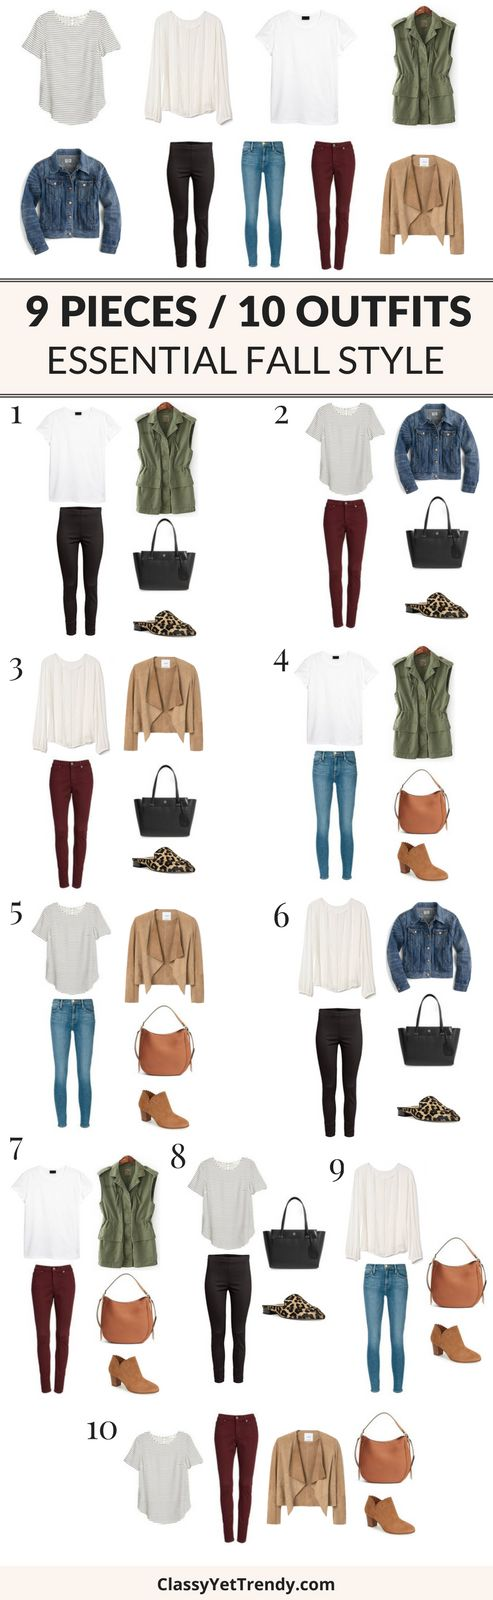 Turn 9 tops and bottoms into 10 outfits for a Fall wardrobe!   If you have 9 essentials in your closet, you can turn them into 10 outfits!  These 9 tops and bottoms are classic and timeless pieces that never go out of style.  Outfit ideas included are ankle pants, burgundy jeans, skinny jeans, pintuck top, striped top, white tee, suede jacket, denim jacket, utility vest, tote, hobo bag, mules and boots.